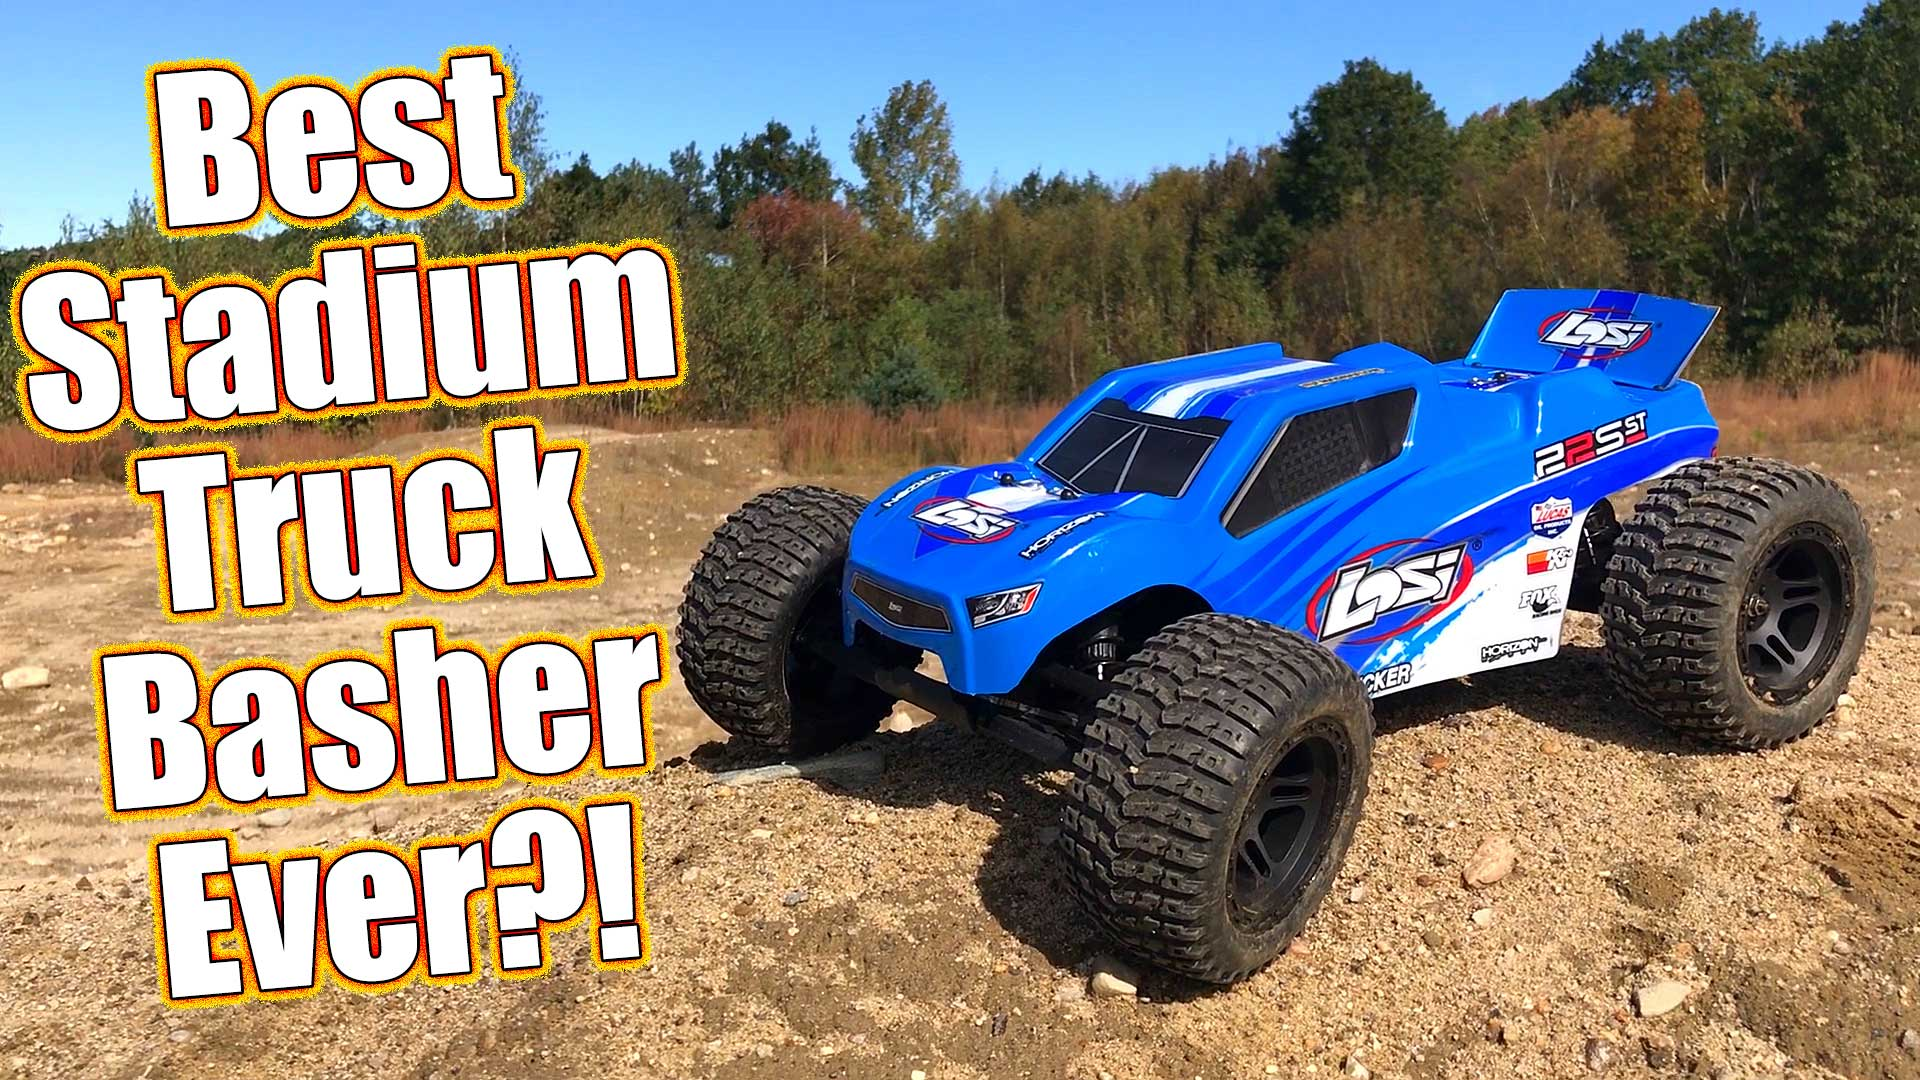 Pro Basher Stadium Truck - Losi 22S ST RTR Brushless Review